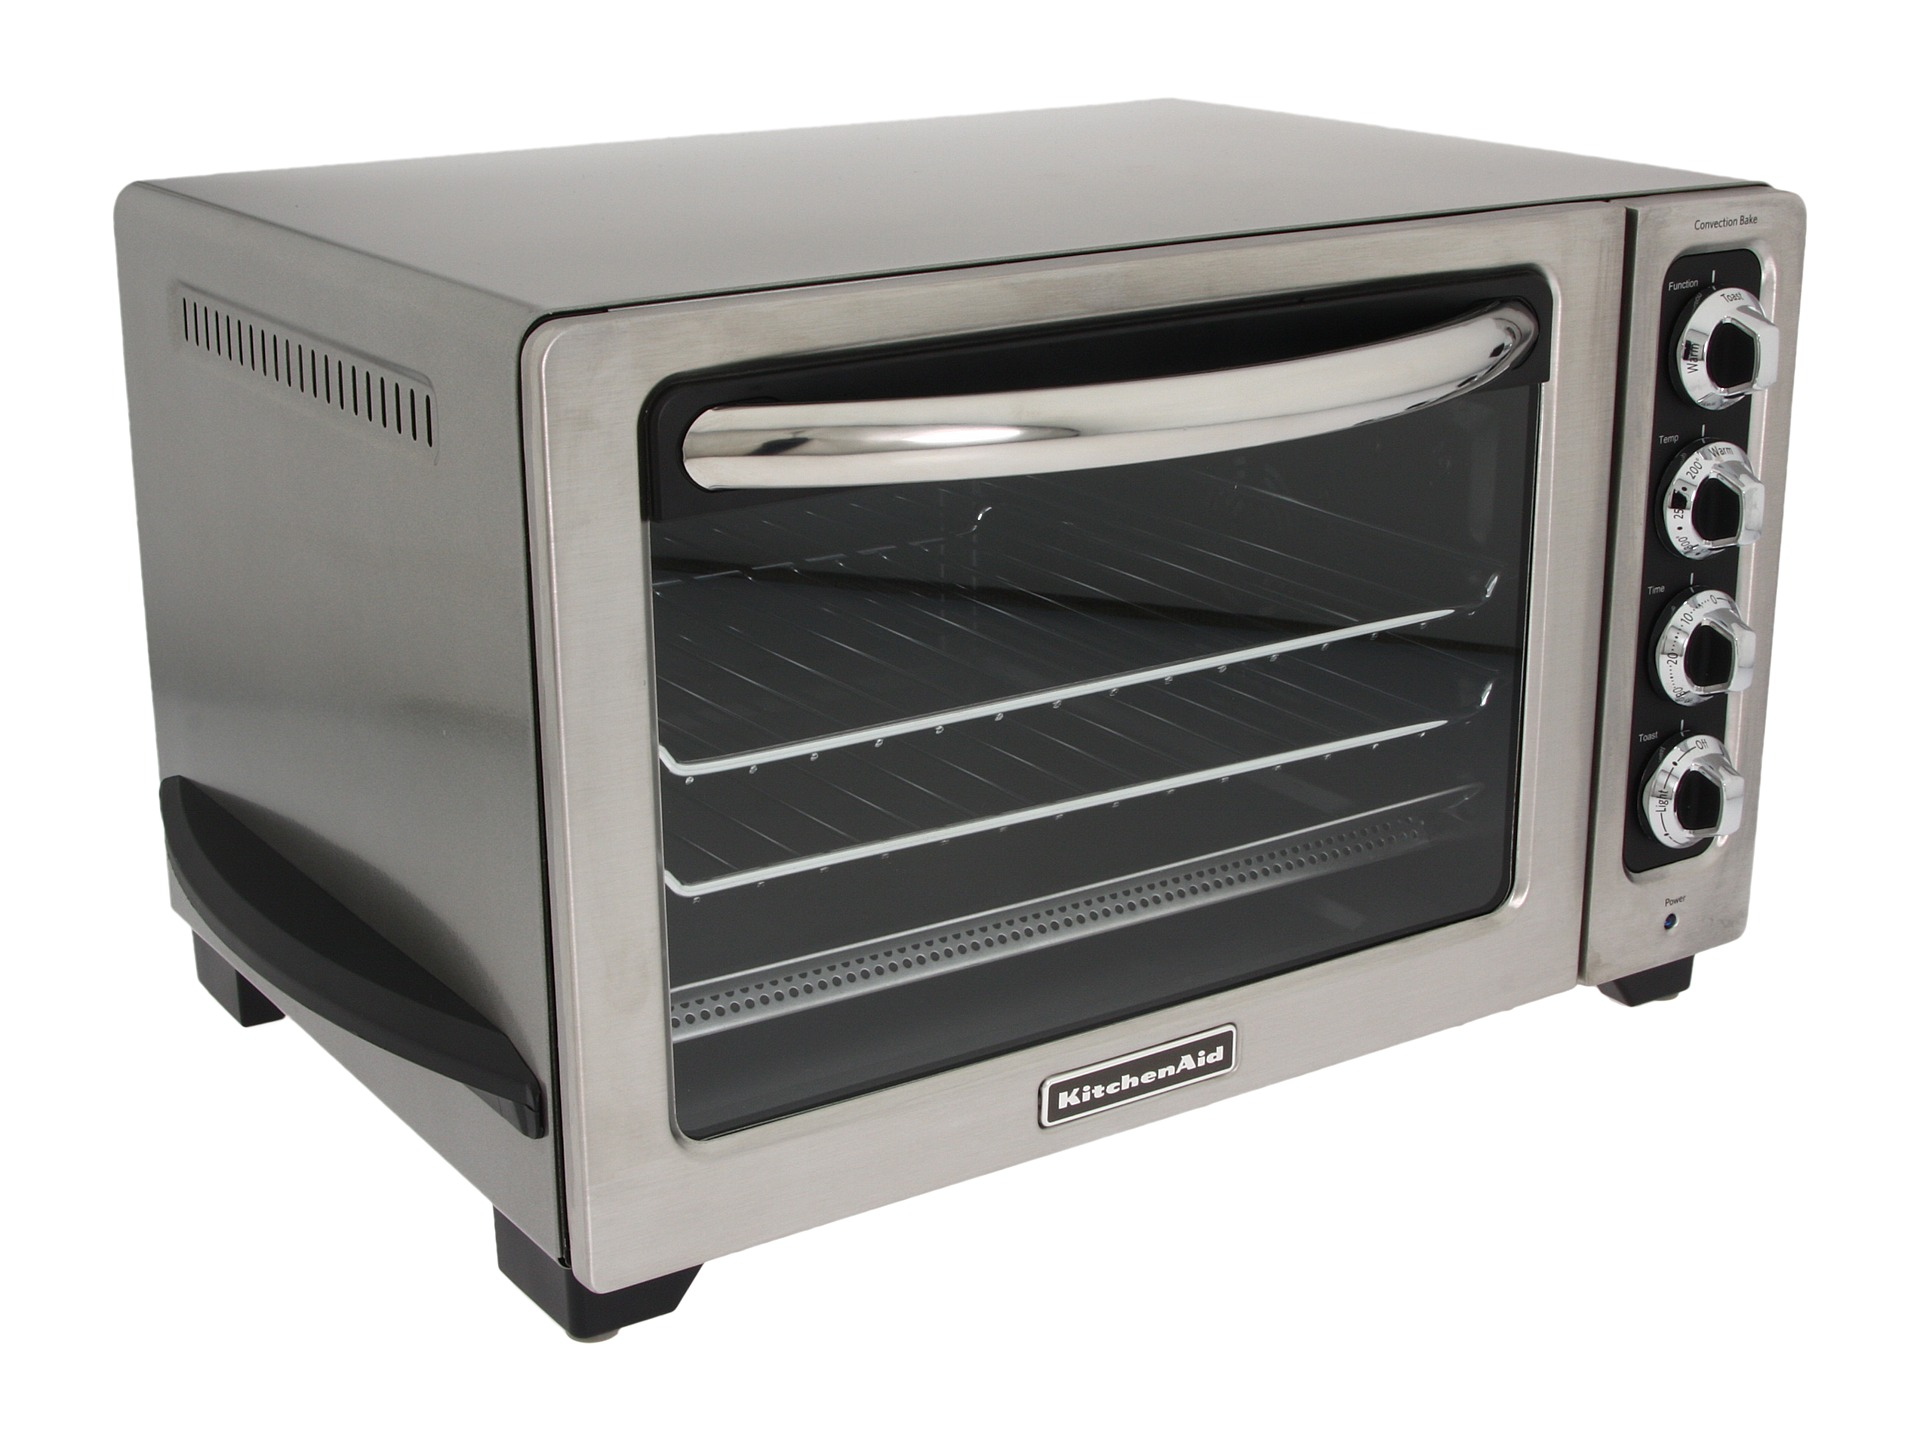 Countertop Convection Oven Kitchenaid : No results for kitchenaid 12 convection countertop oven kco223 ...